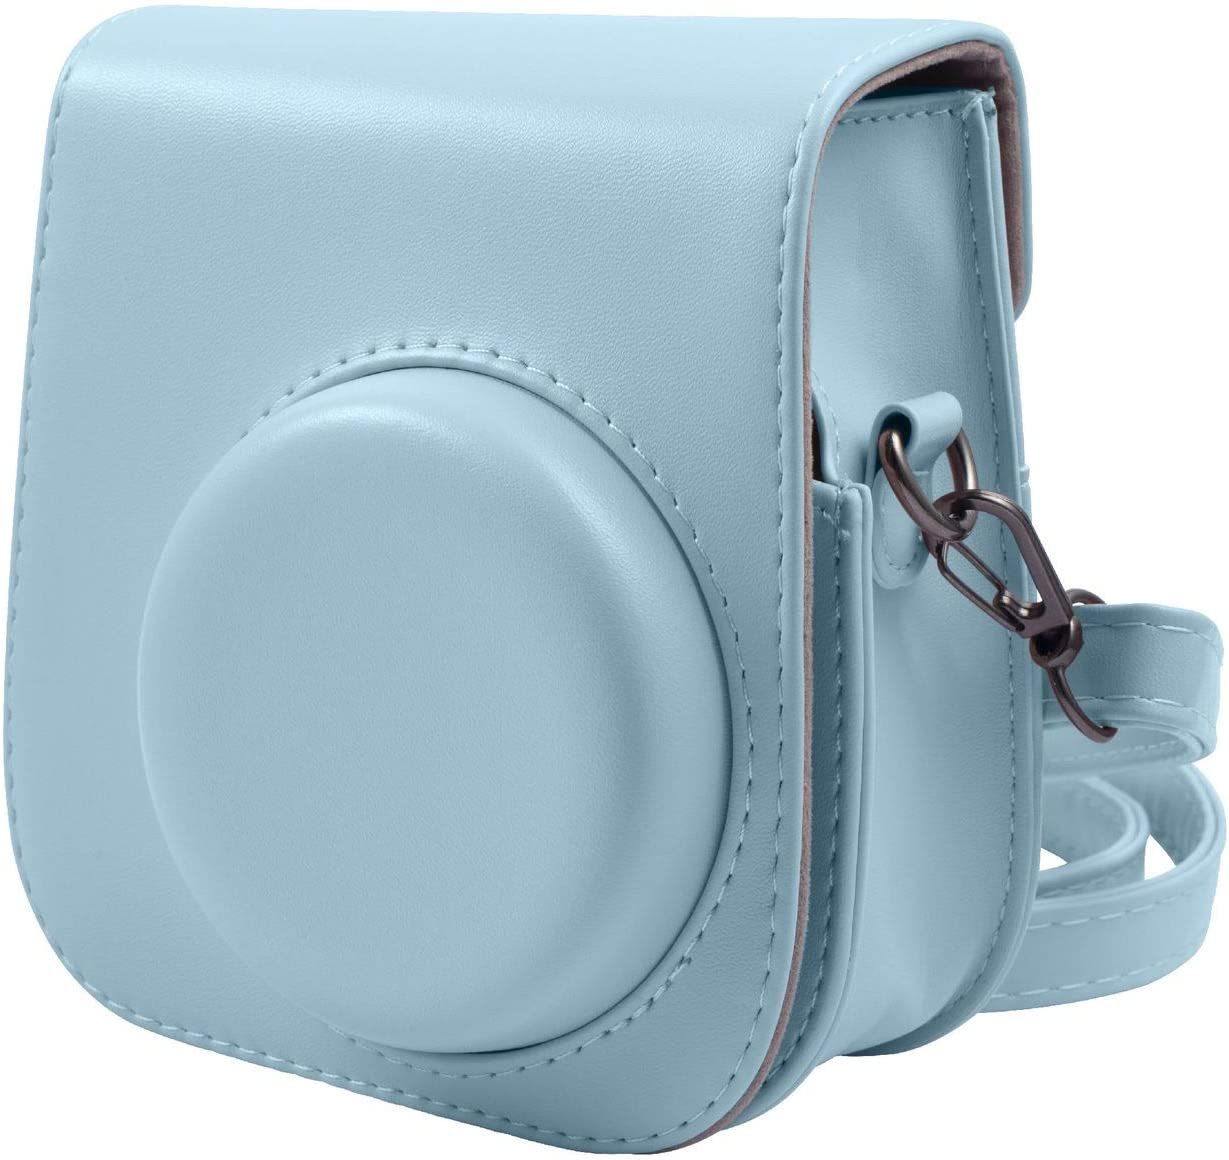 Camera Case for Fujifilm Instax Mini 11 Instant Camera Annle PU Leather Protective Case with Removable Strap Starry Sky